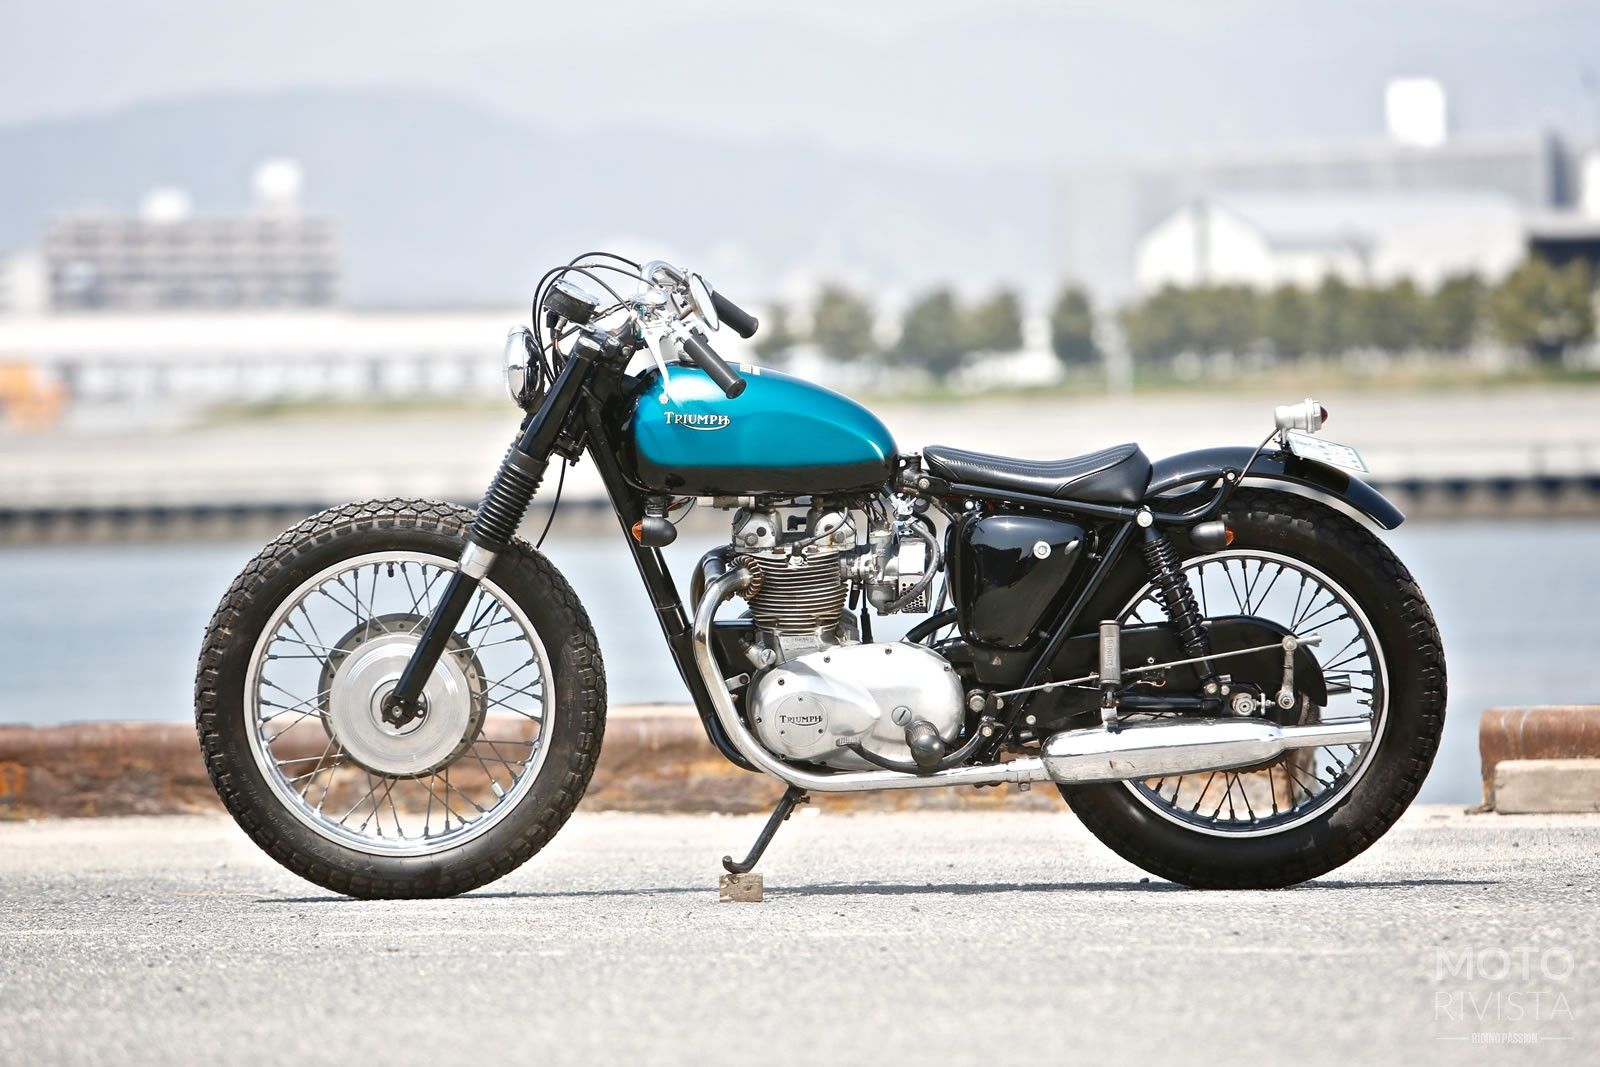 Today's feature build a Triumph T100 custom is a shining example of Heiwa's genius execution on a classic bike. Taking classic motorcycles and putting a custom spin to it is something Heiwa Motorcycles does on a daily basis.